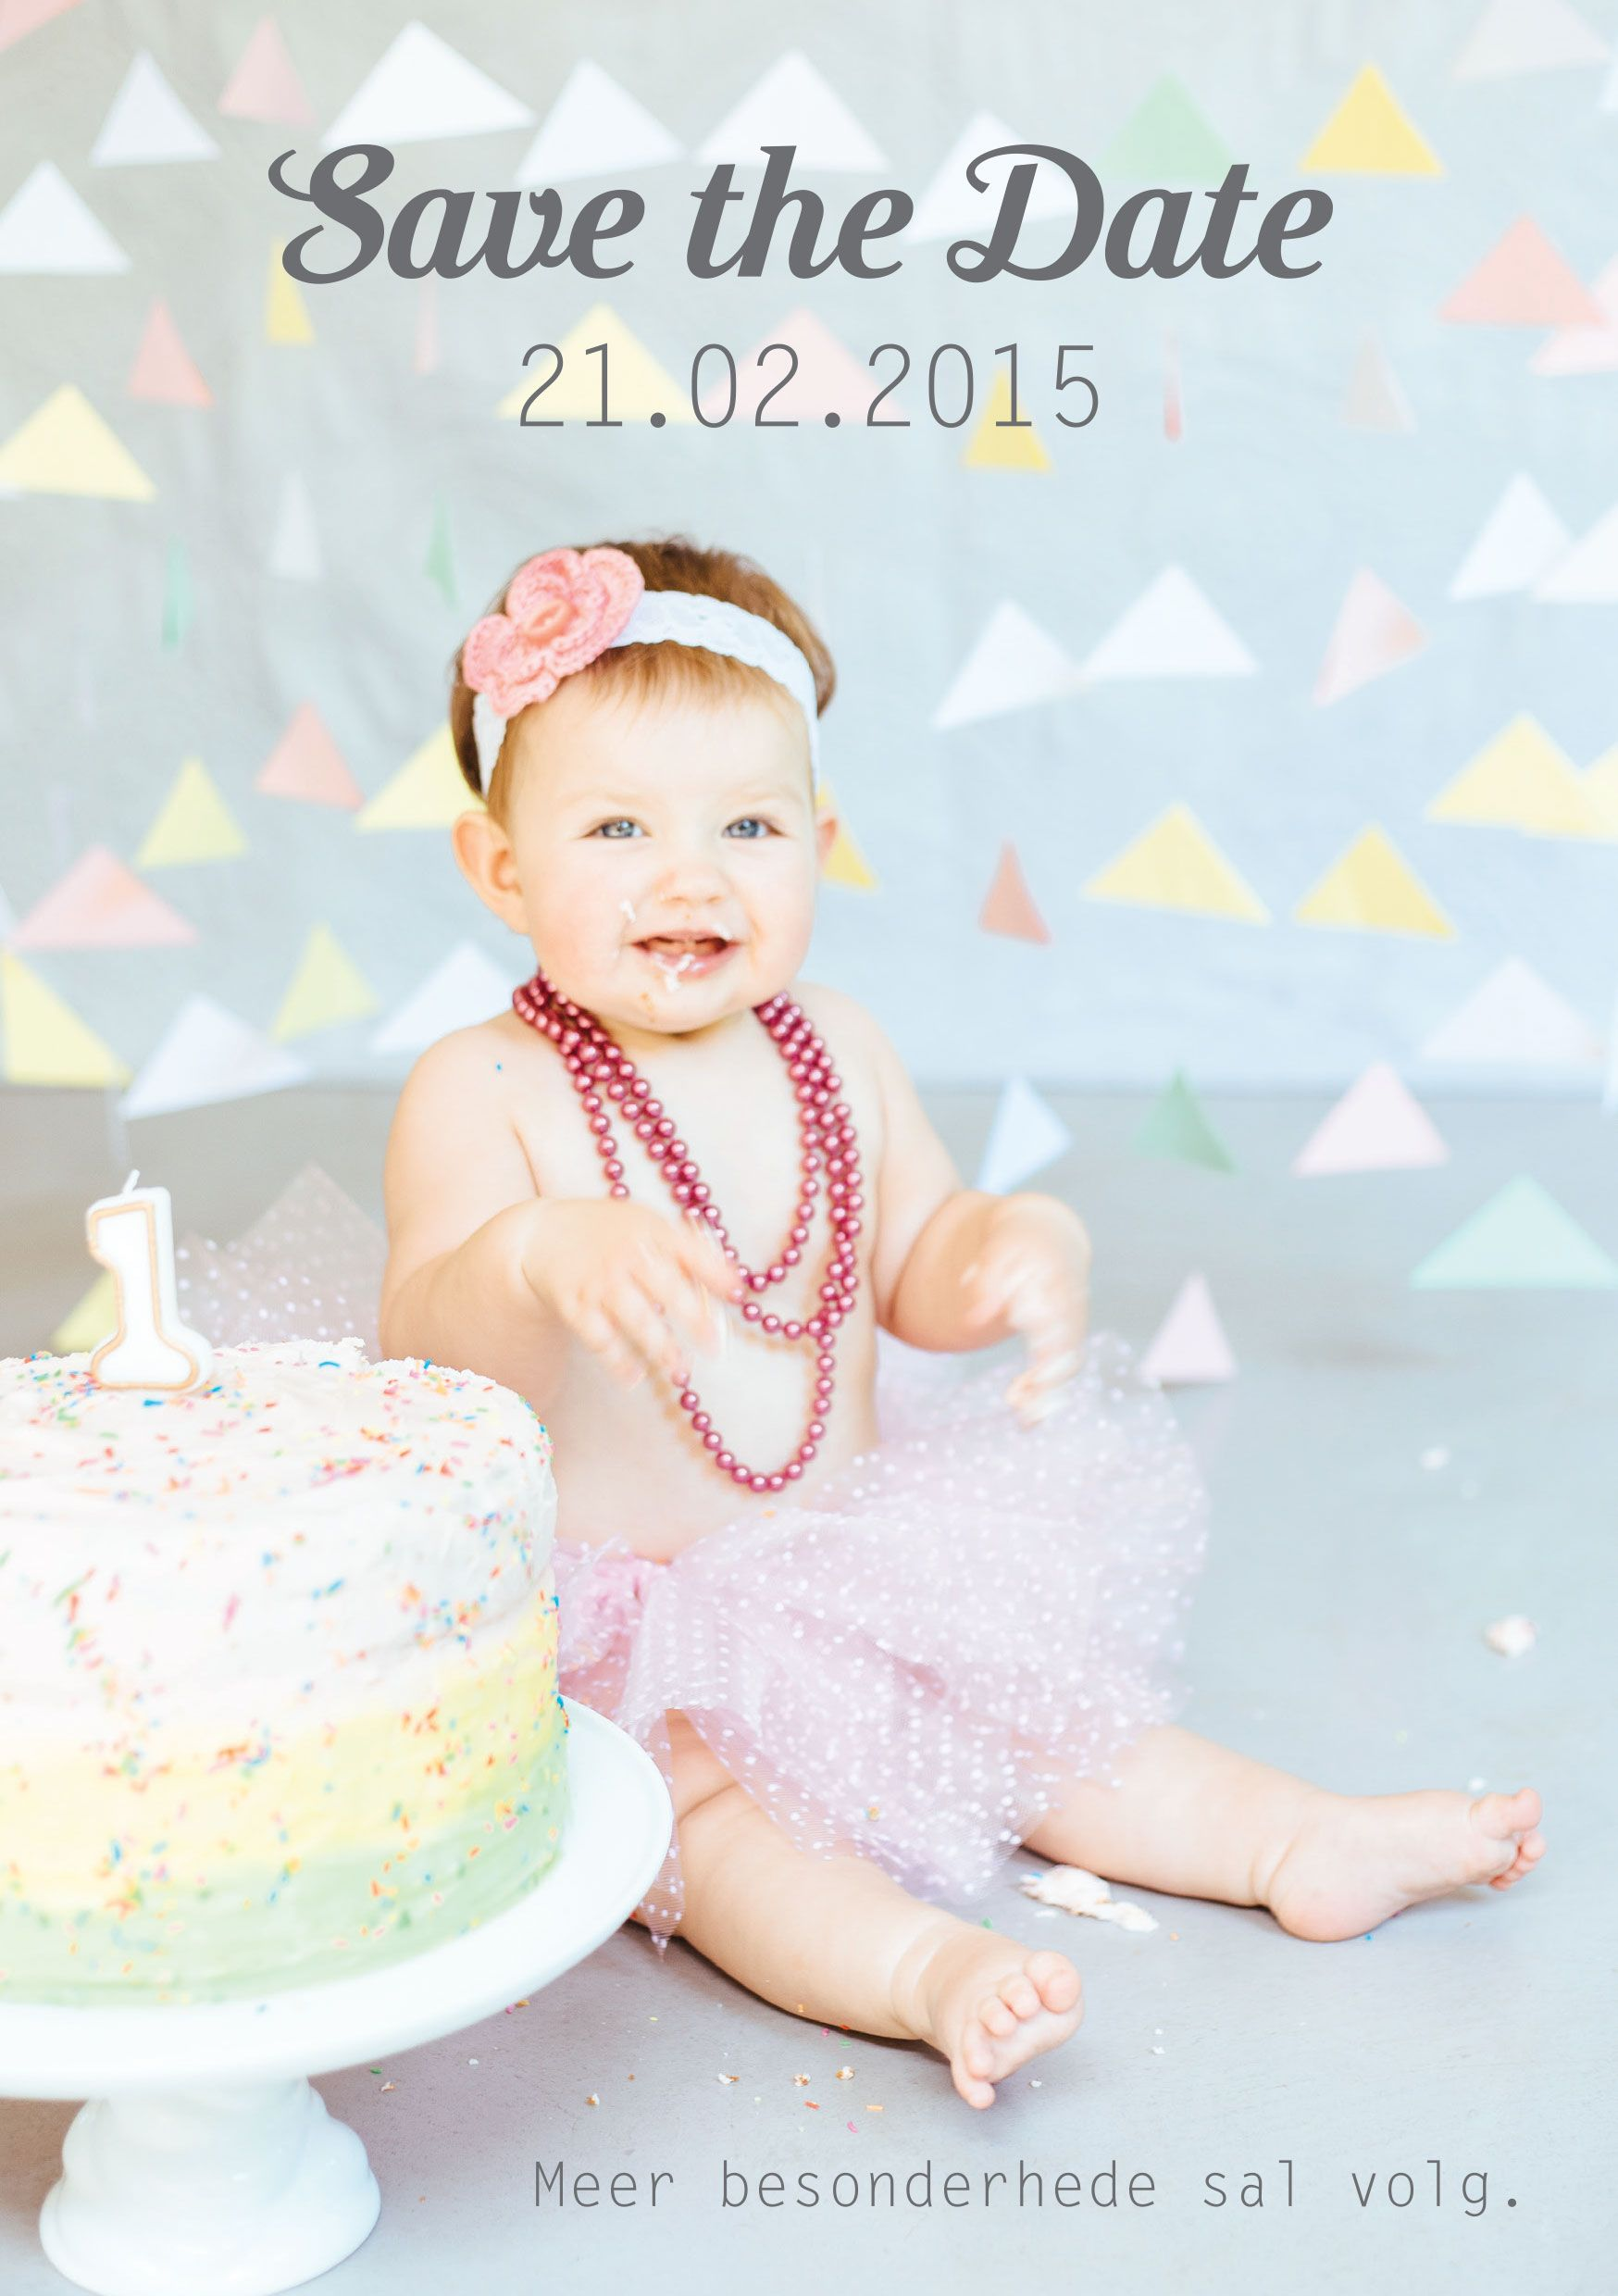 Neve S Save The Date To Her 1st Birthday Party 1st Birthday Girls 1st Birthday Parties Girl Birthday Save the date birthday template